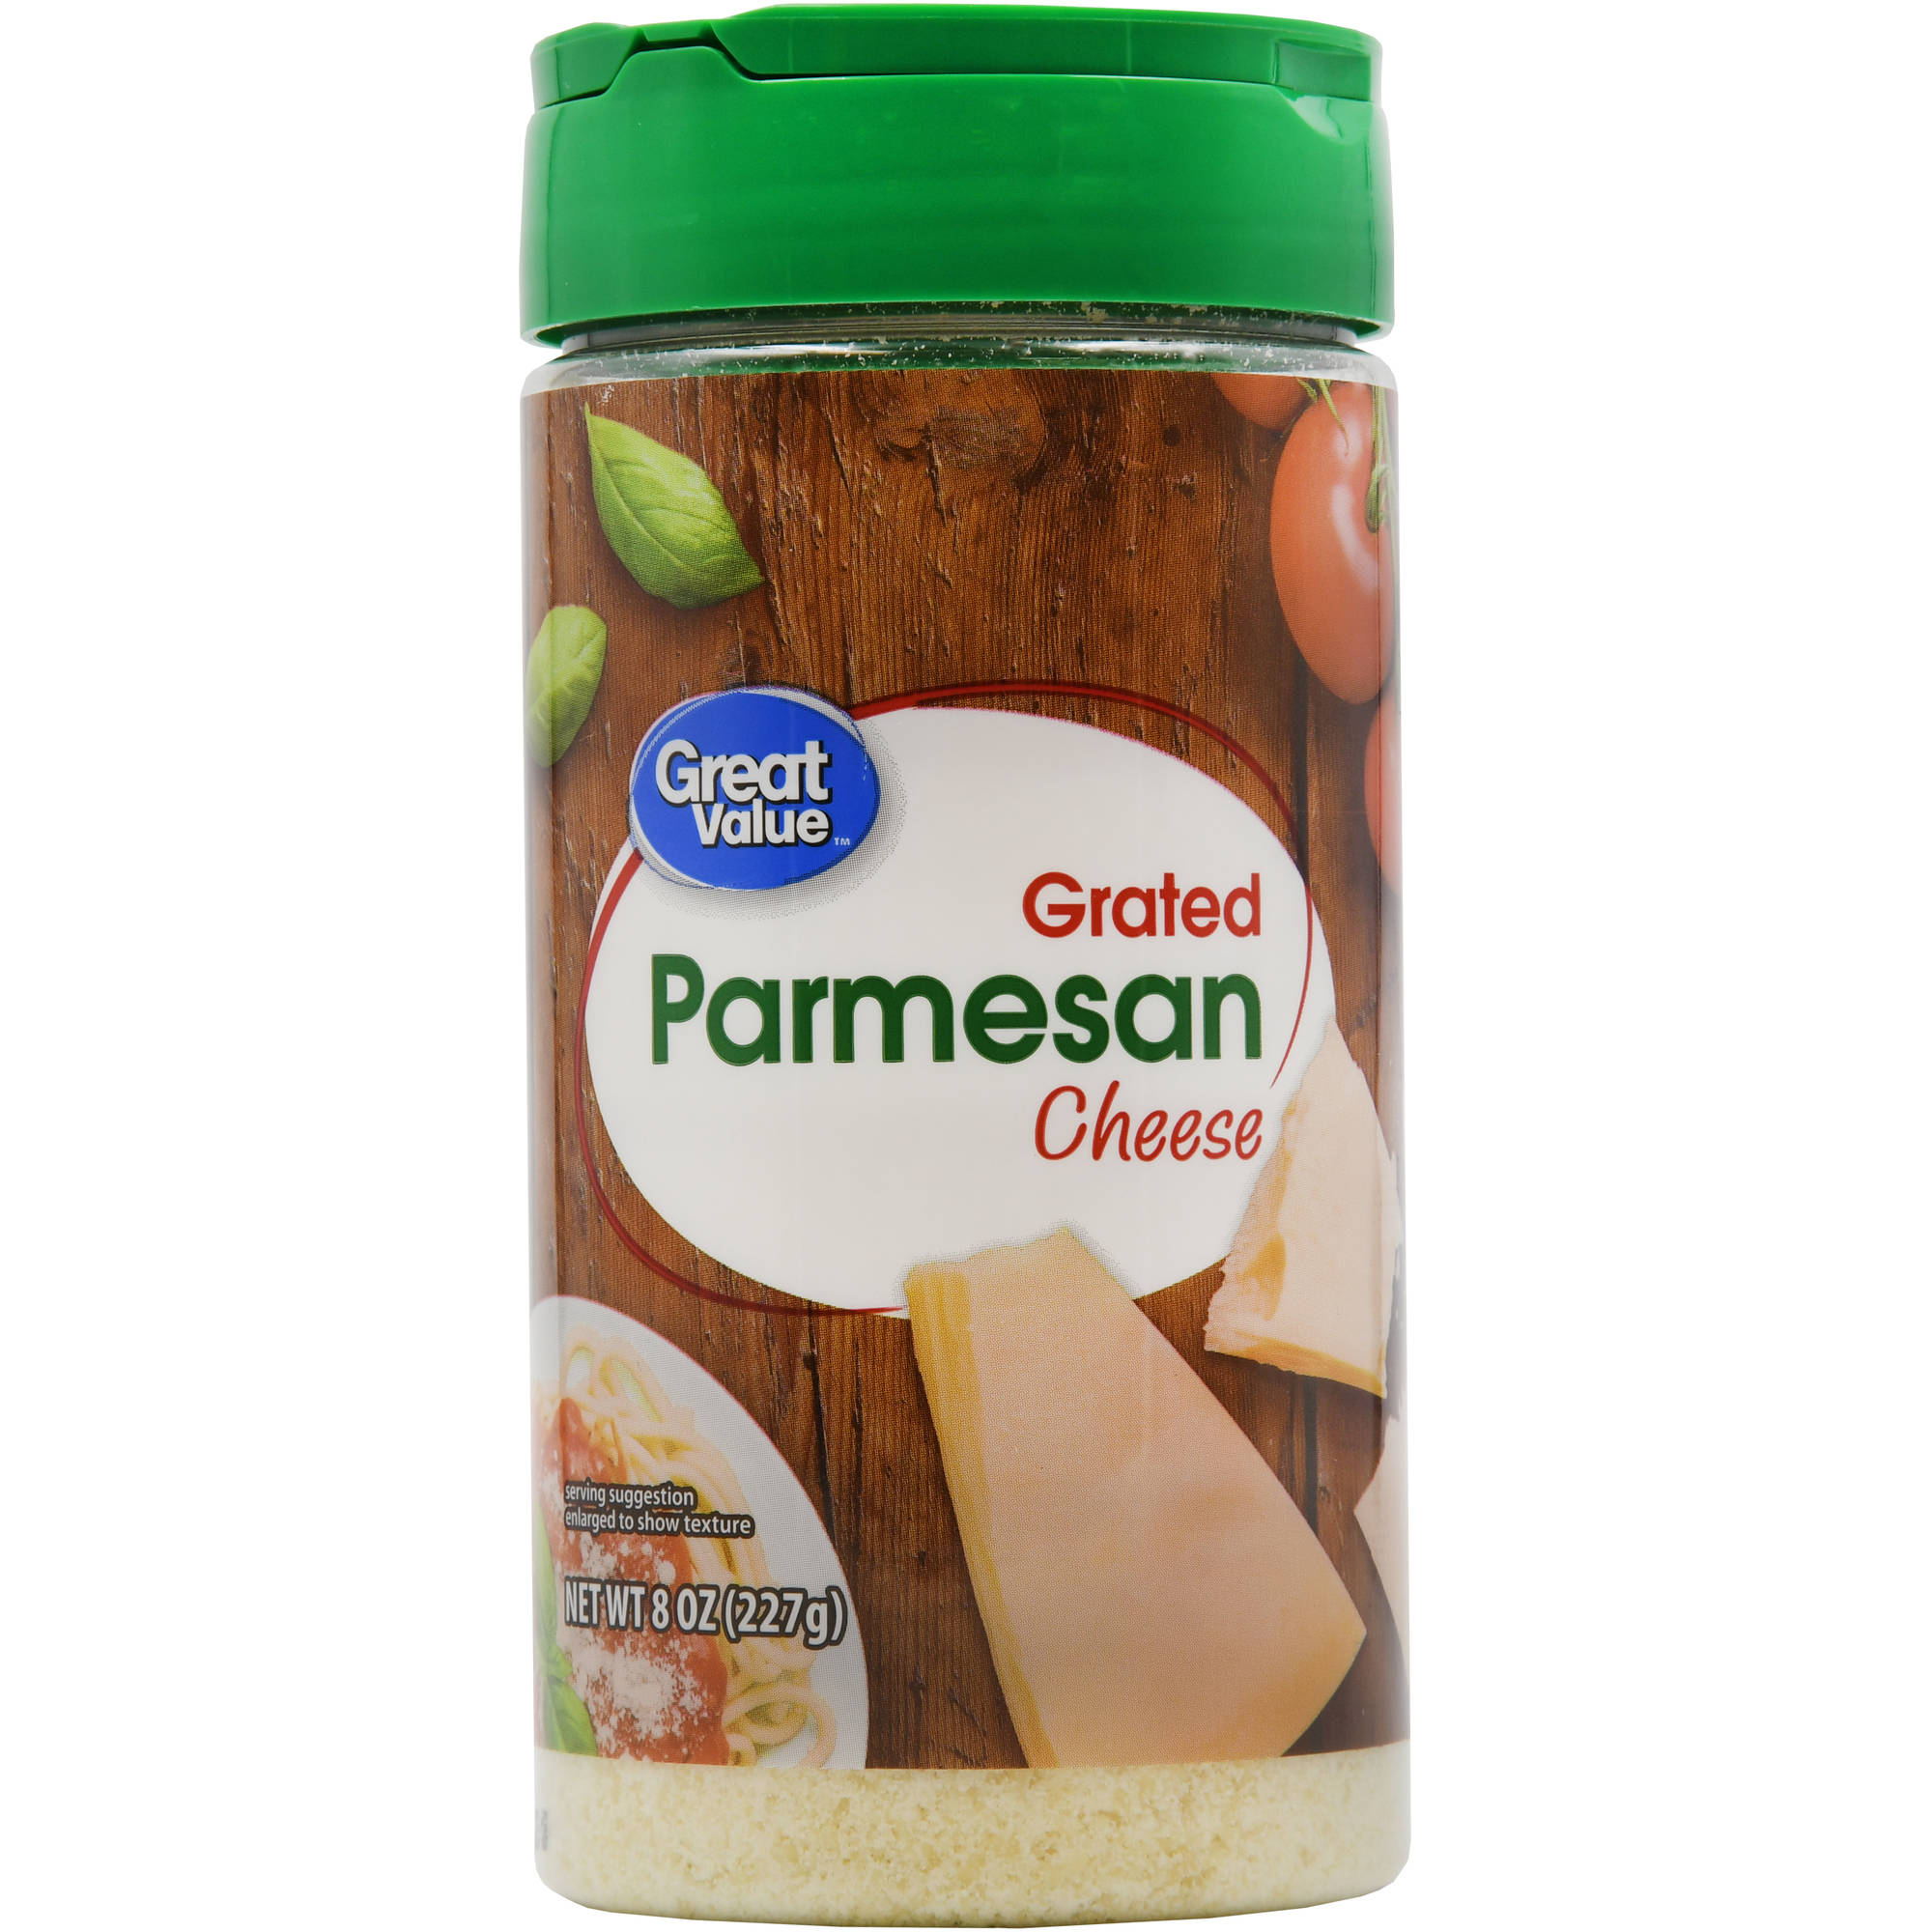 Great Value 100% Parmesan Grated Cheese, 8 oz